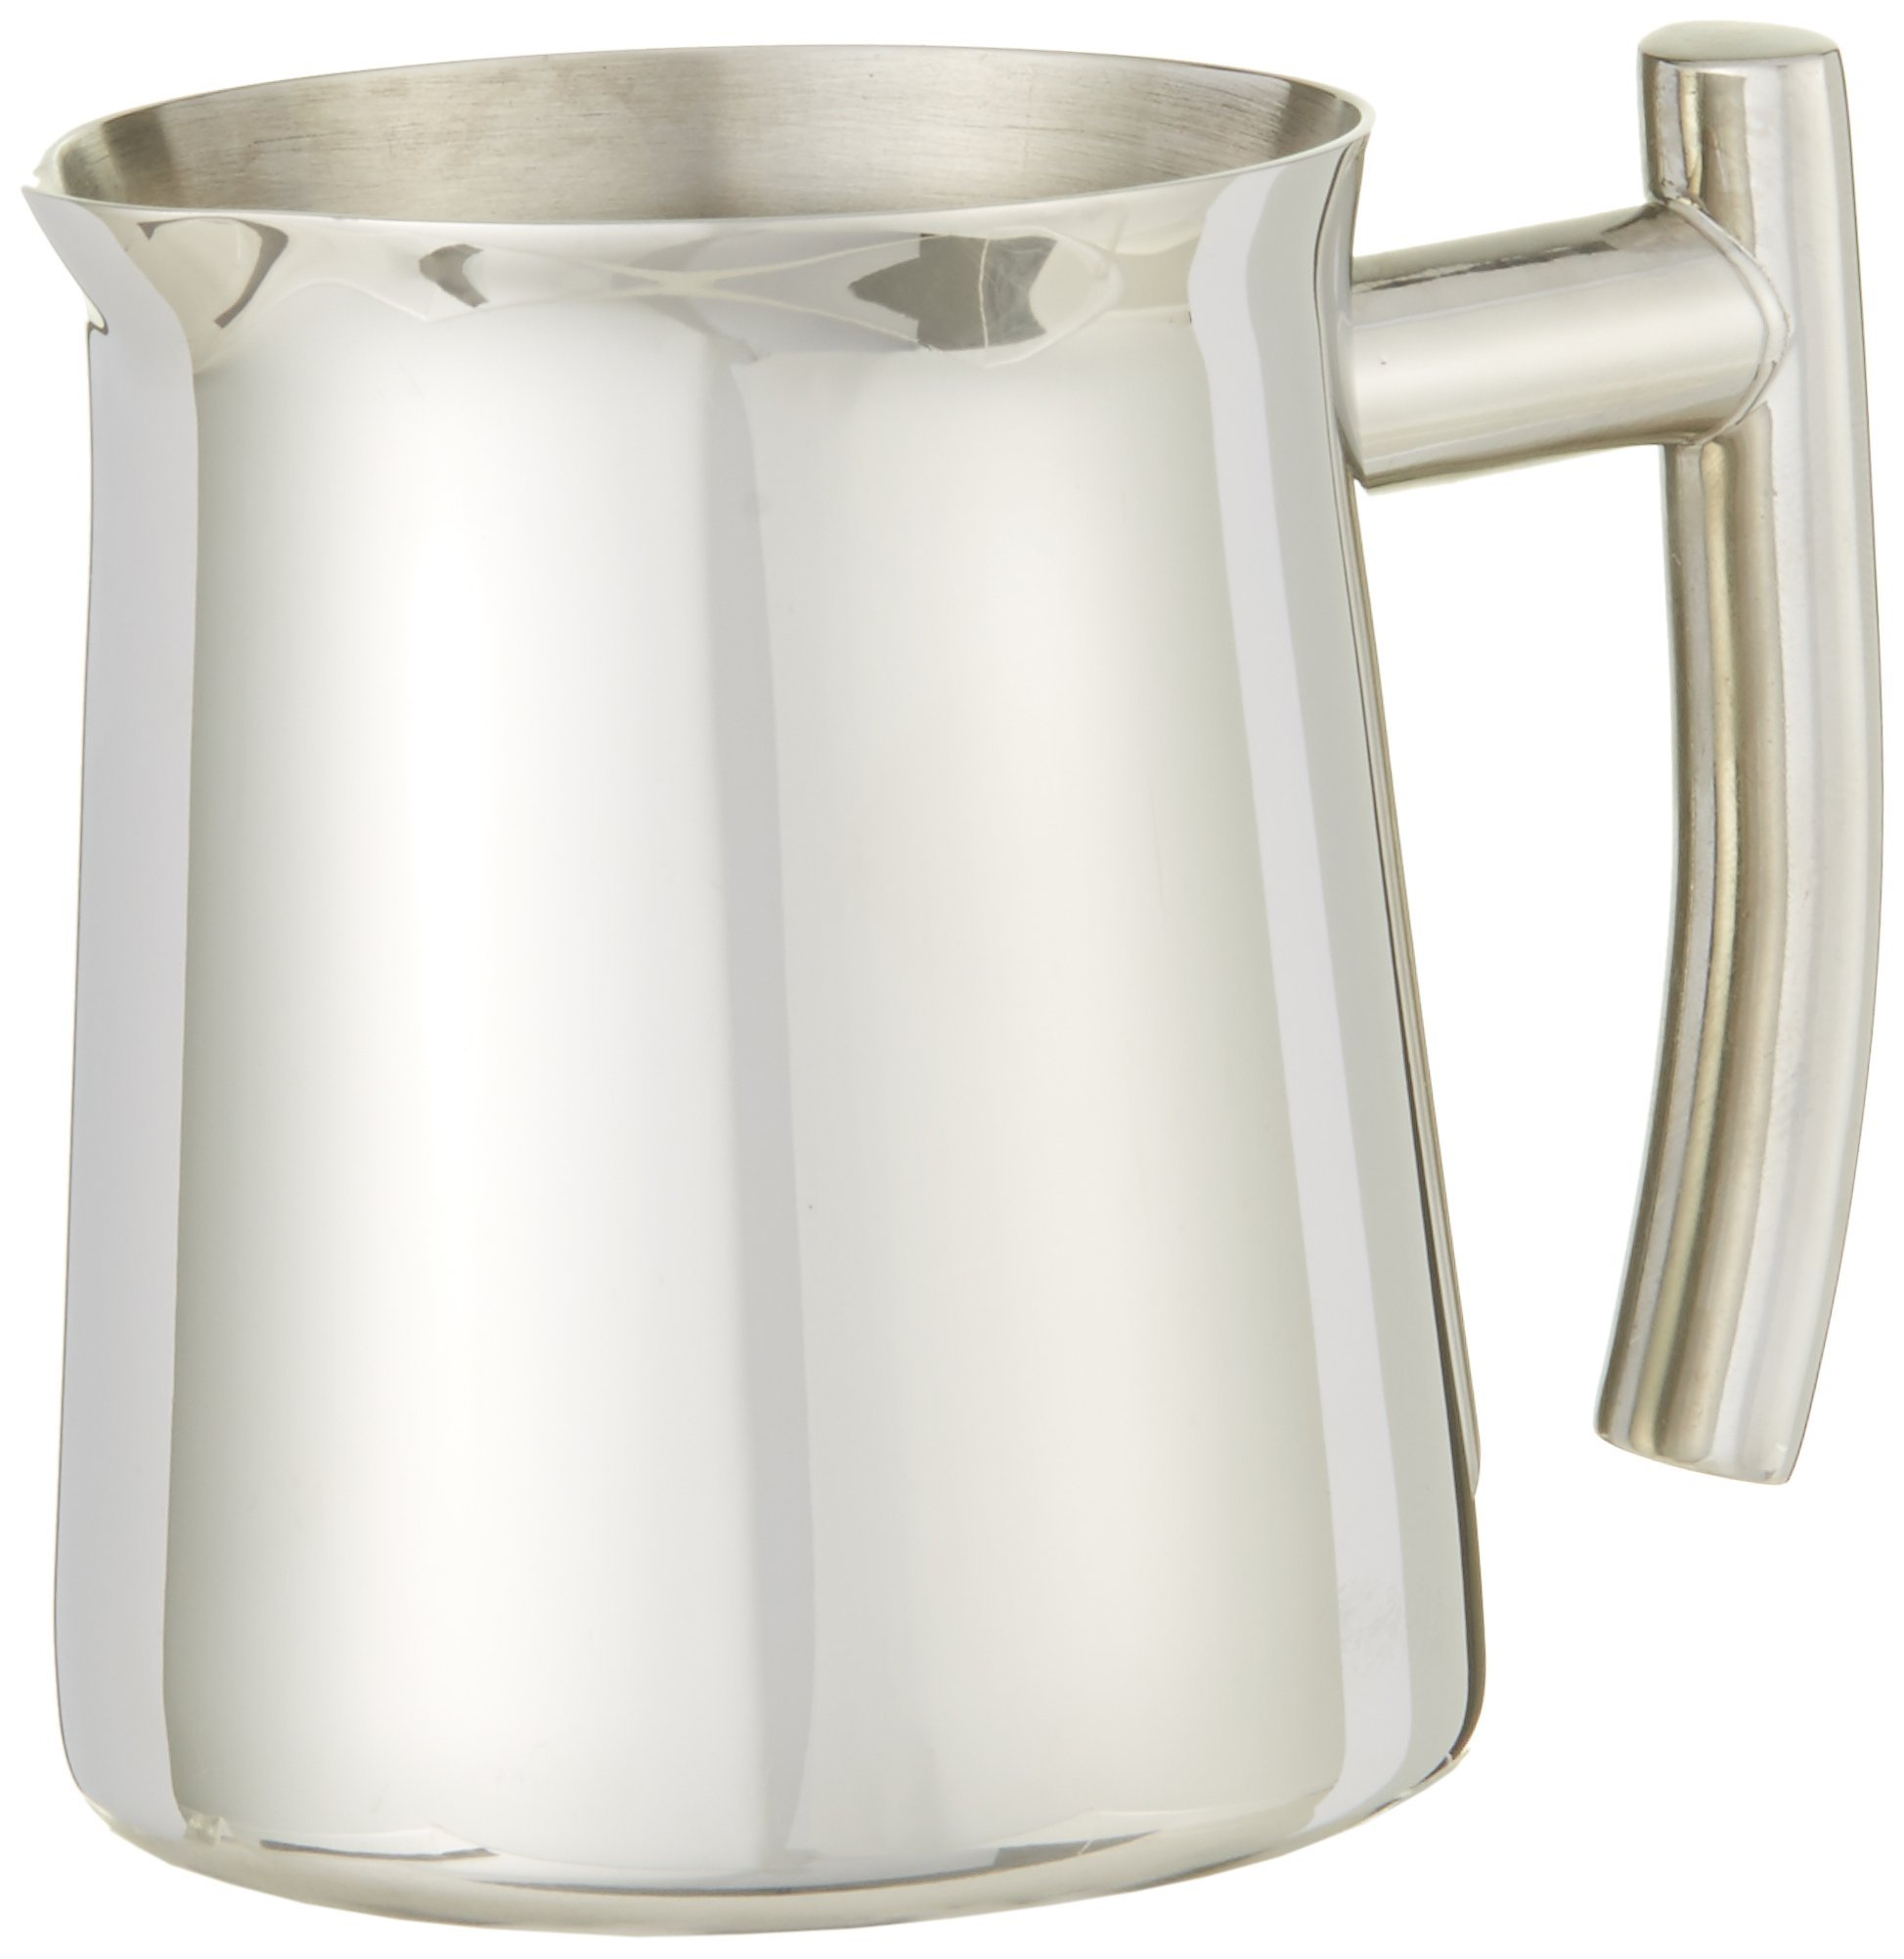 Frieling USA 18/10 Stainless Steel Creamer/Frothing Pitcher